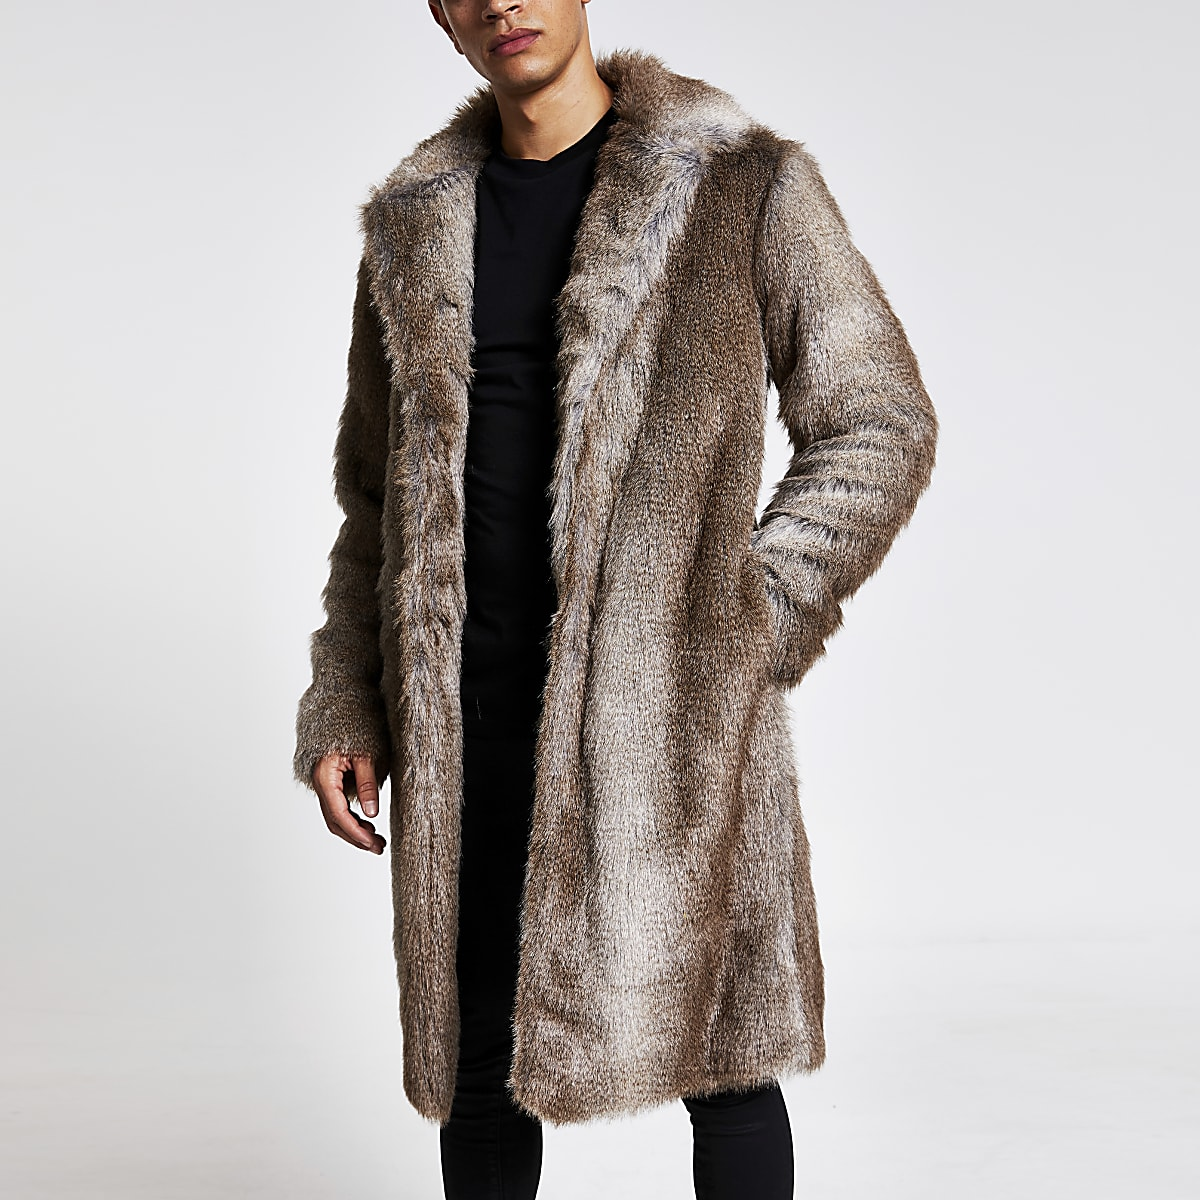 Brown faux fur overcoat